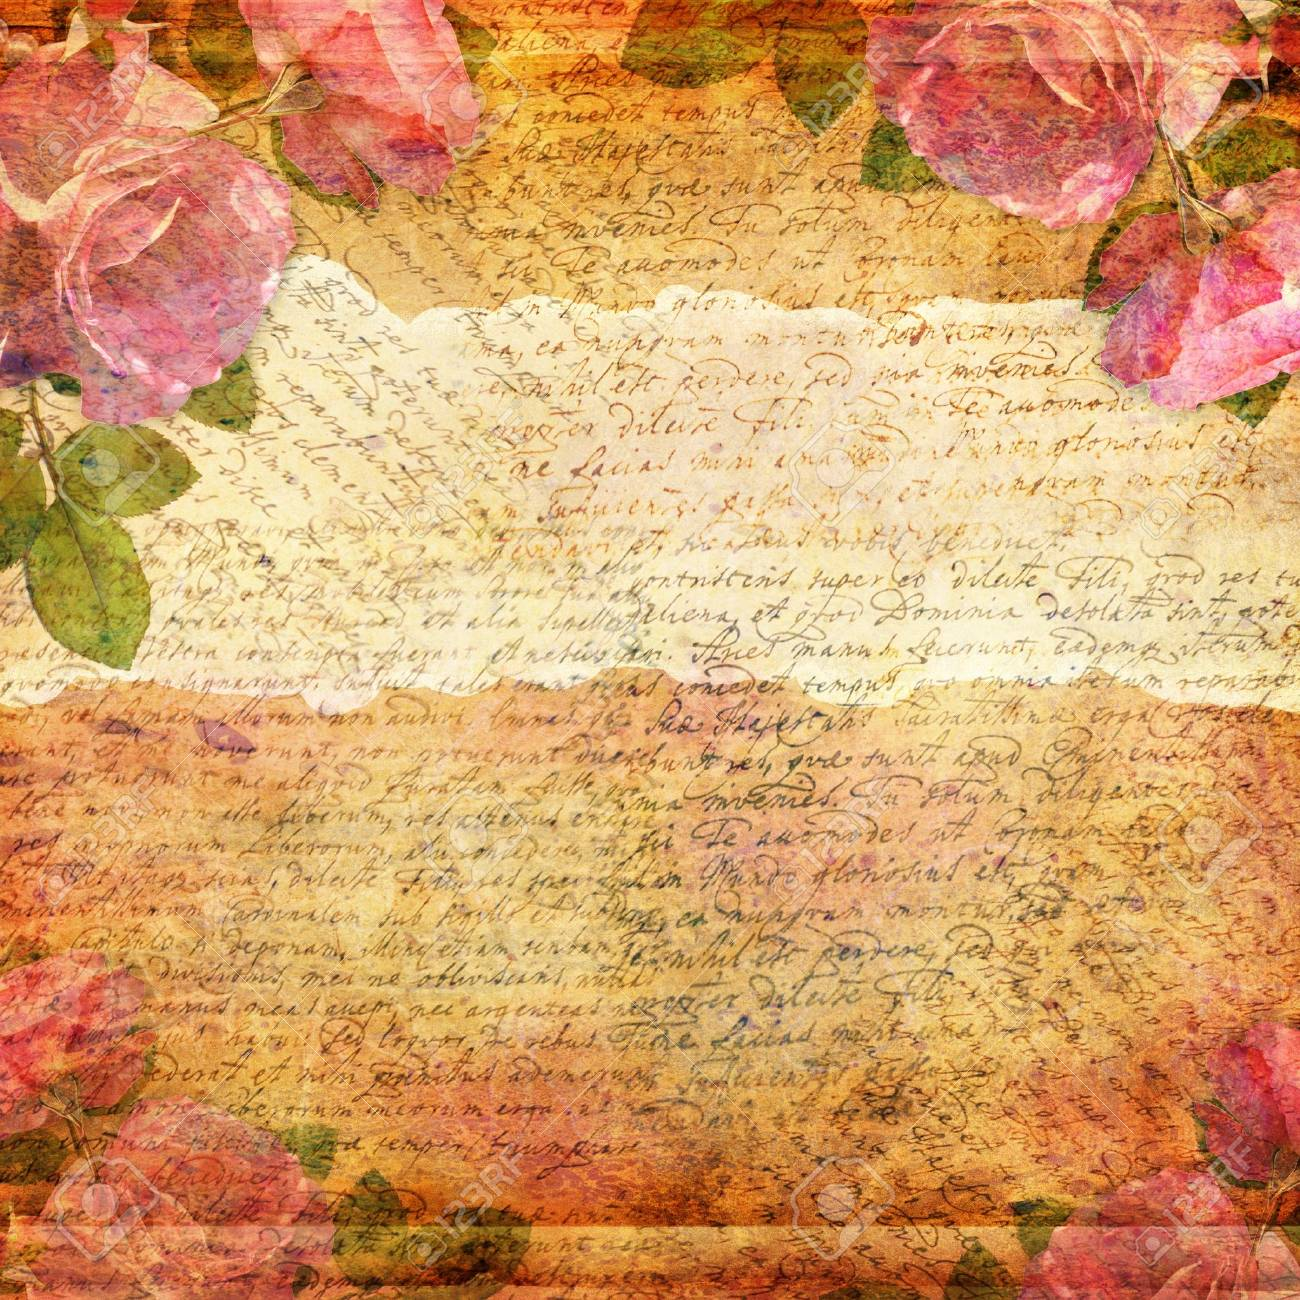 Grunge abstract background with roses - 14835605